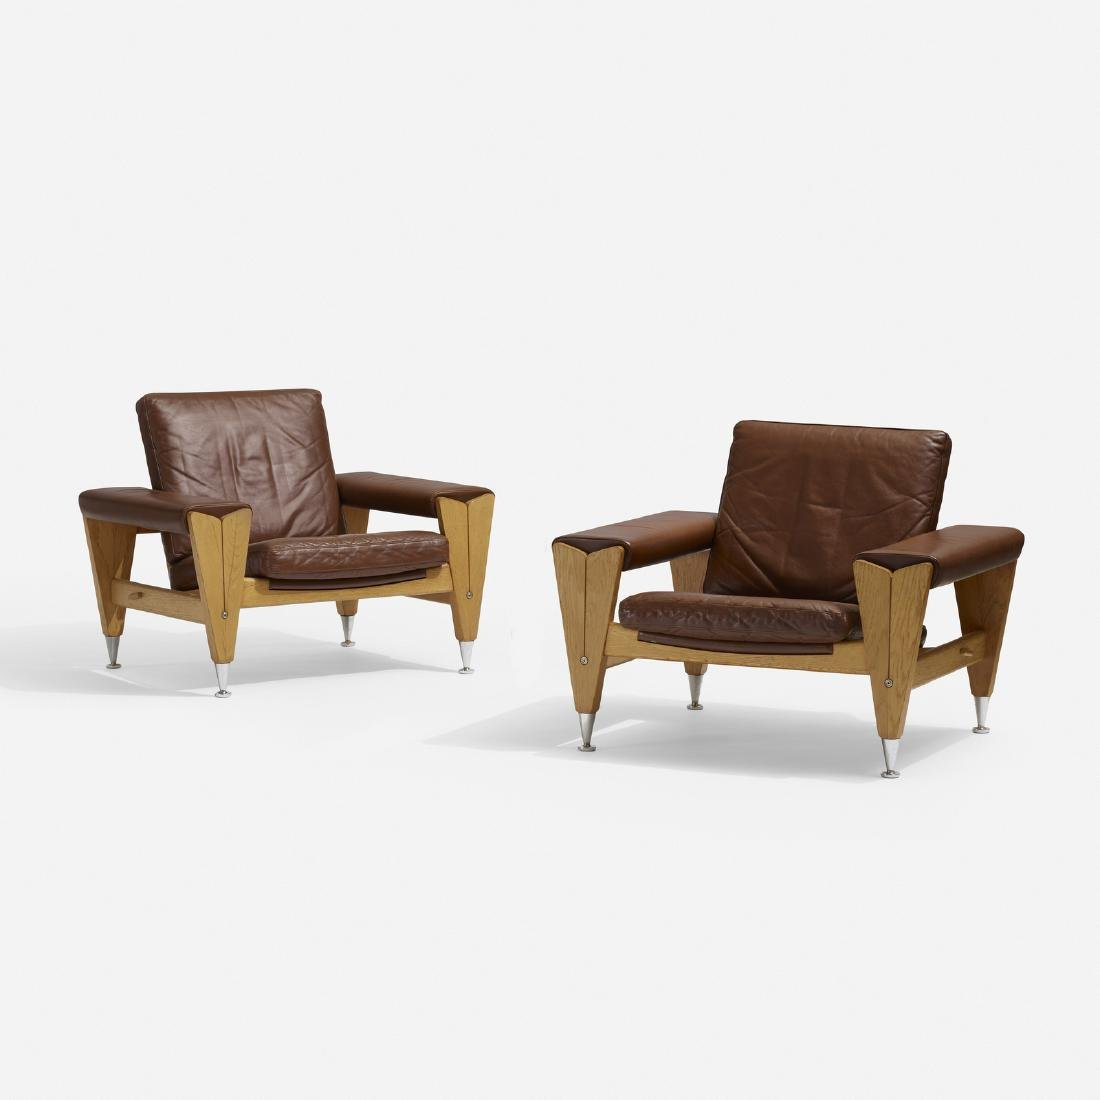 Hans J. Wegner, lounge chairs, pair